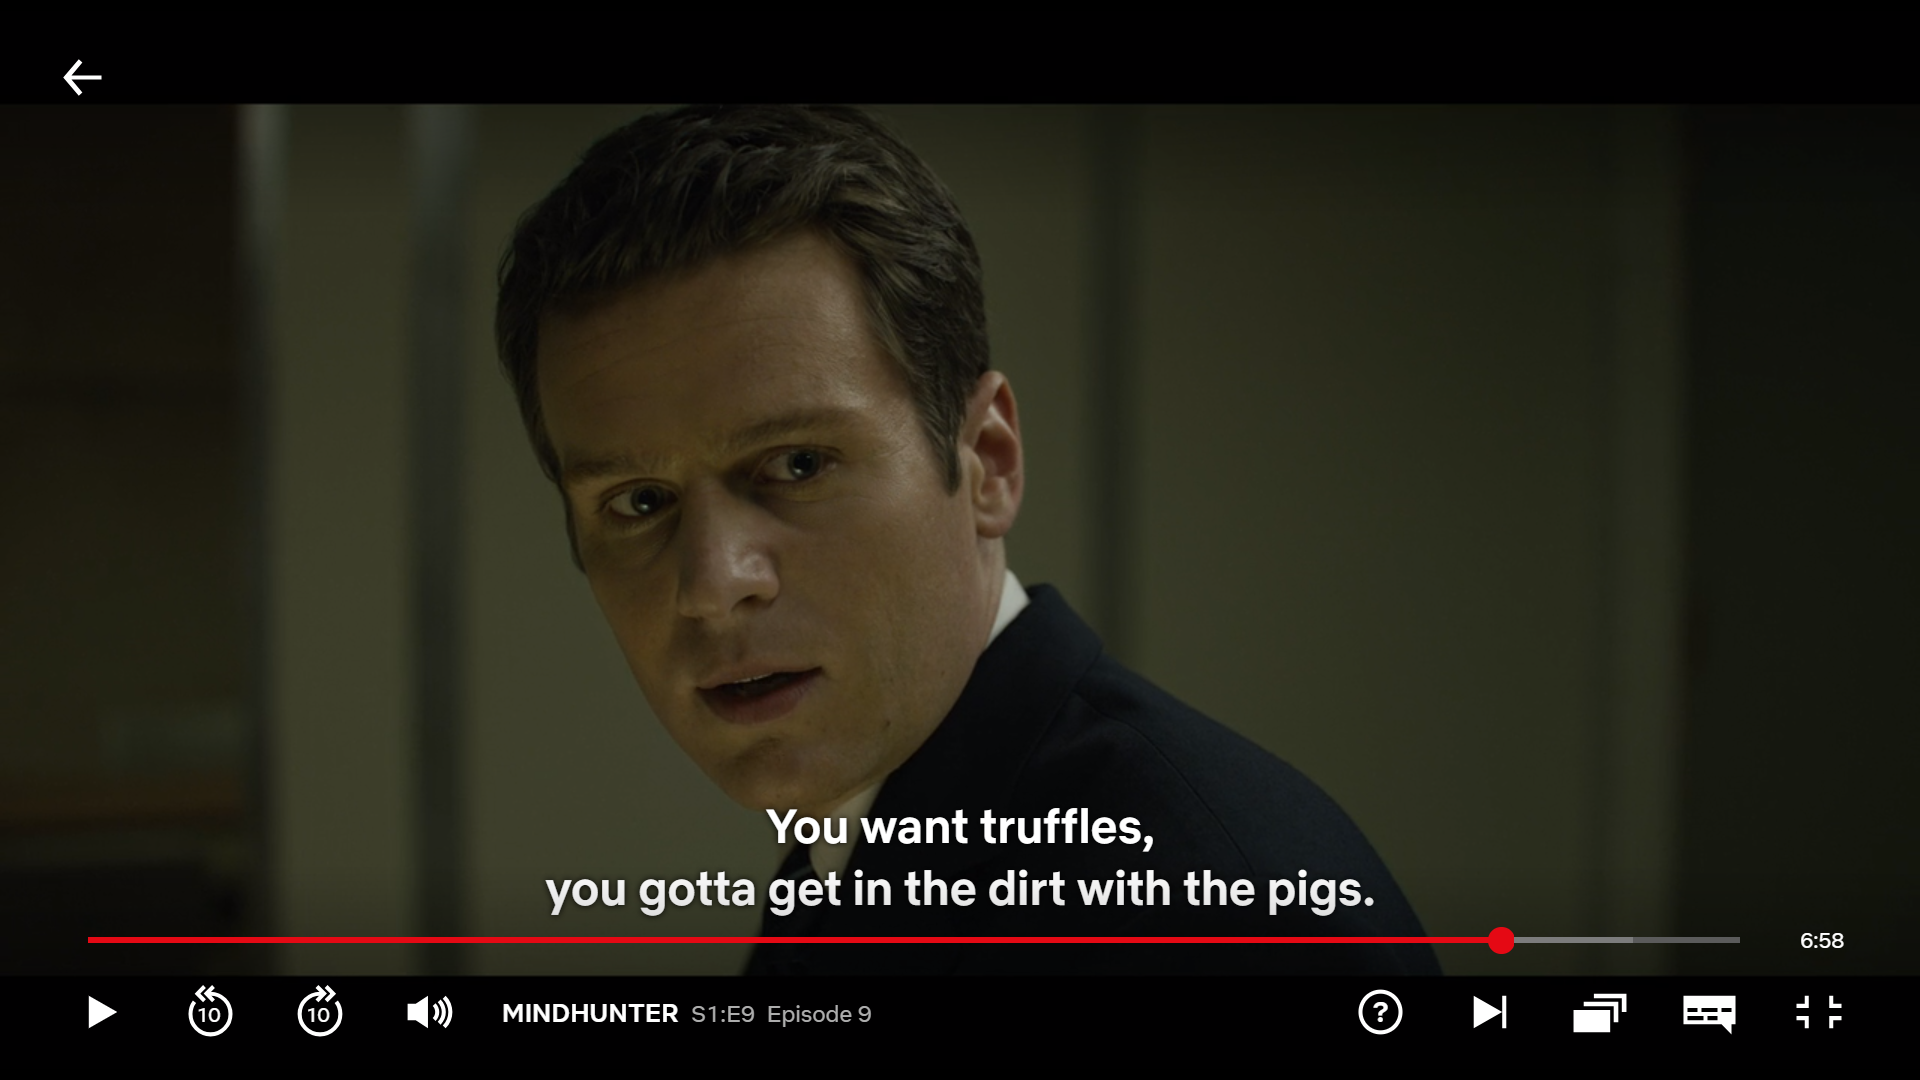 Mindhunter, Manhunt: Unabomber and the Themes of the Serial